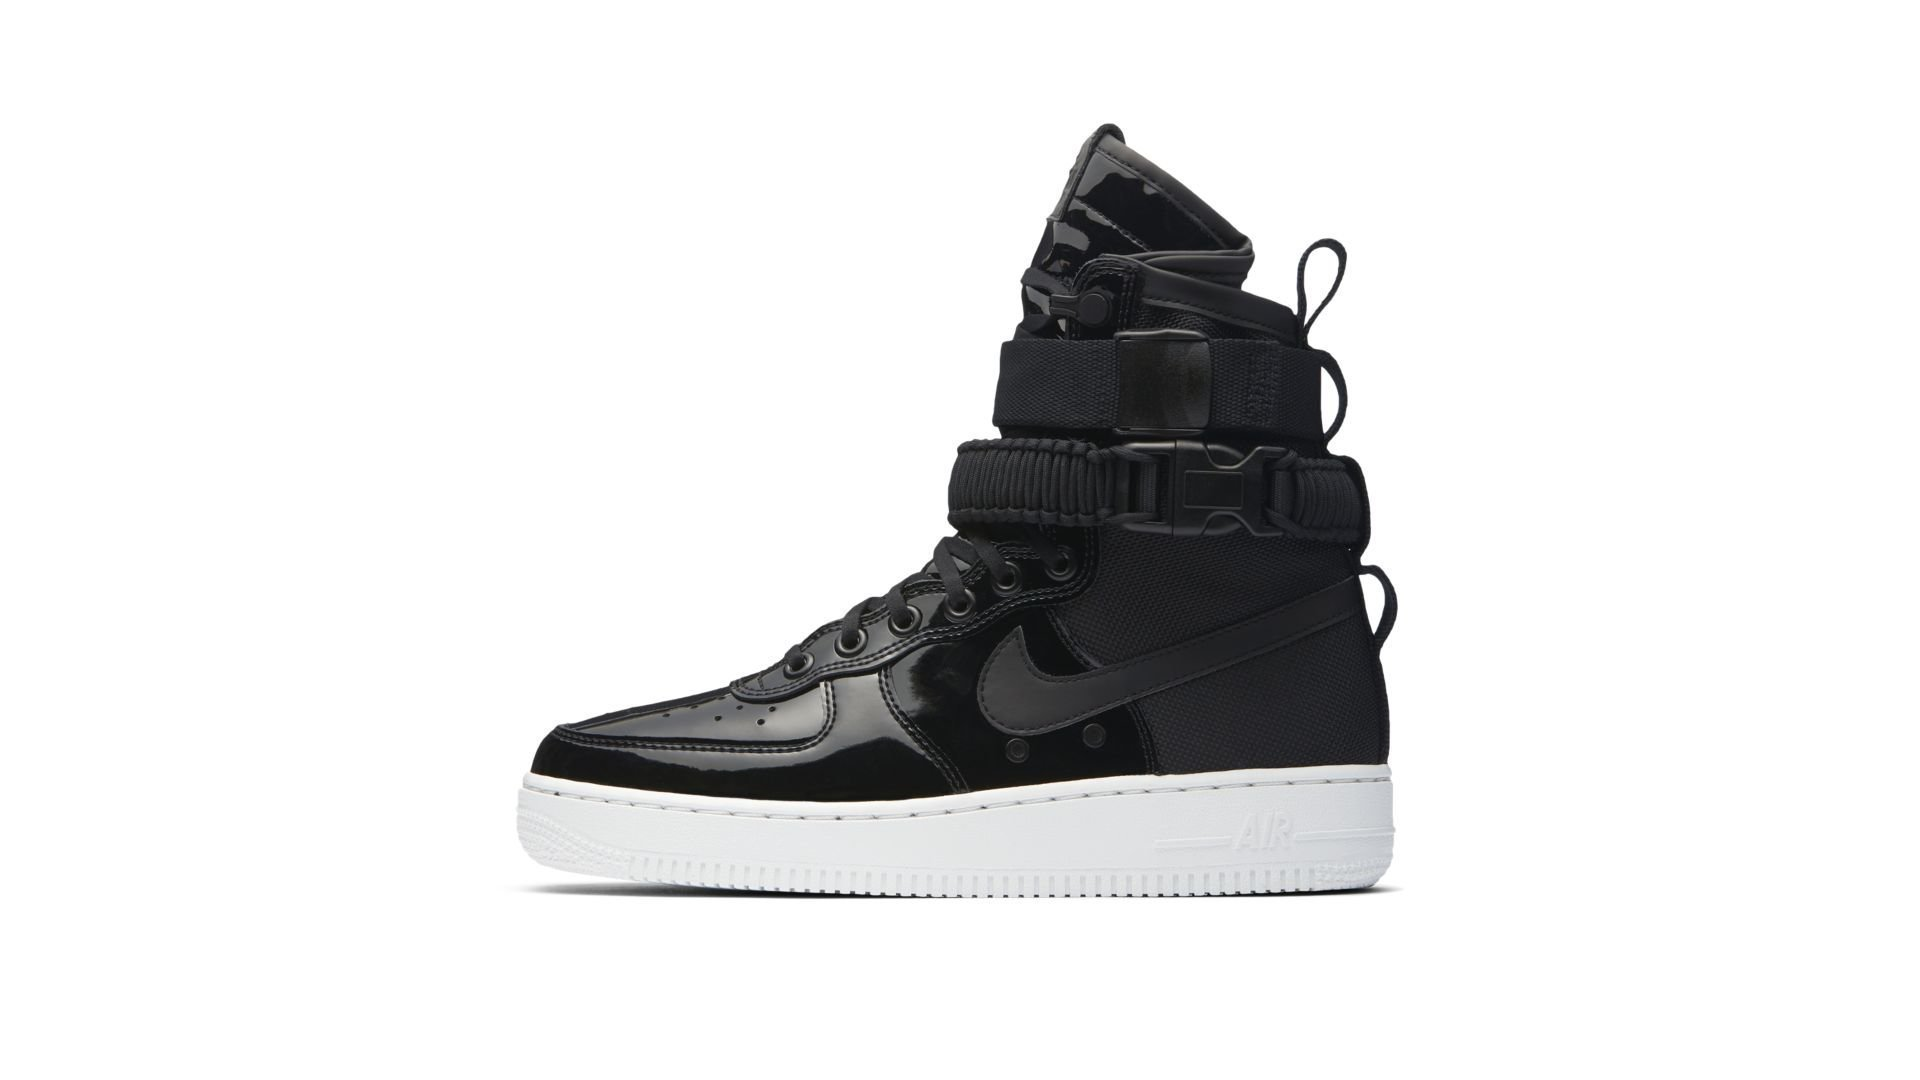 Nike Special Field Air Force 1 Black Patent (AJ0963-001)